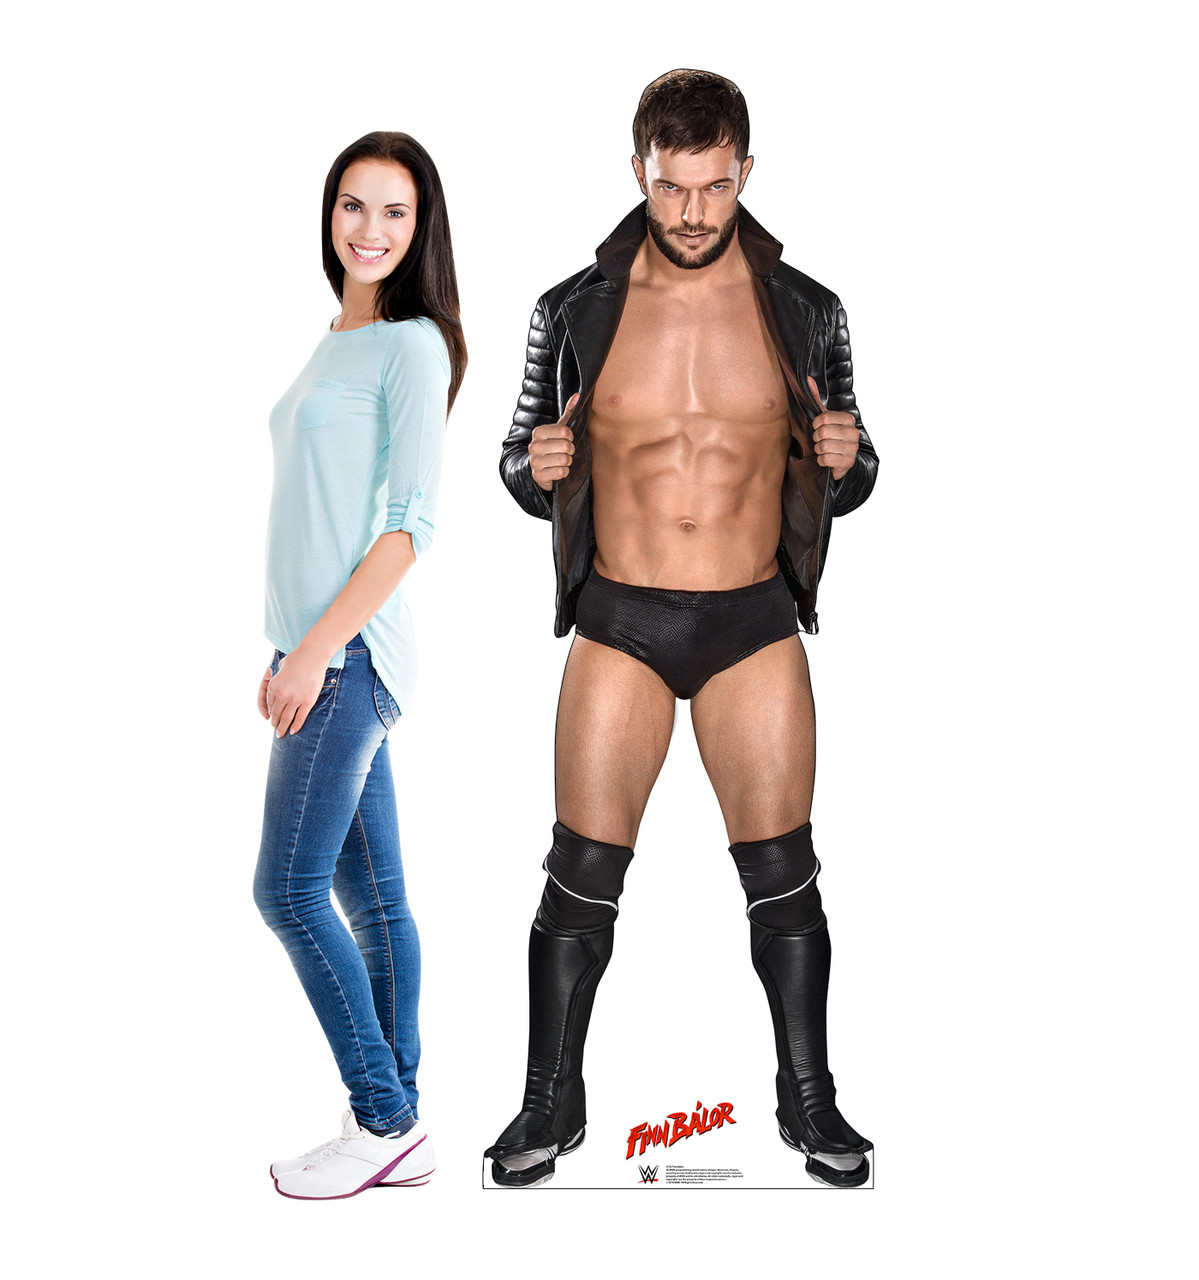 Finn Balor Life-size cardboard standee front with model